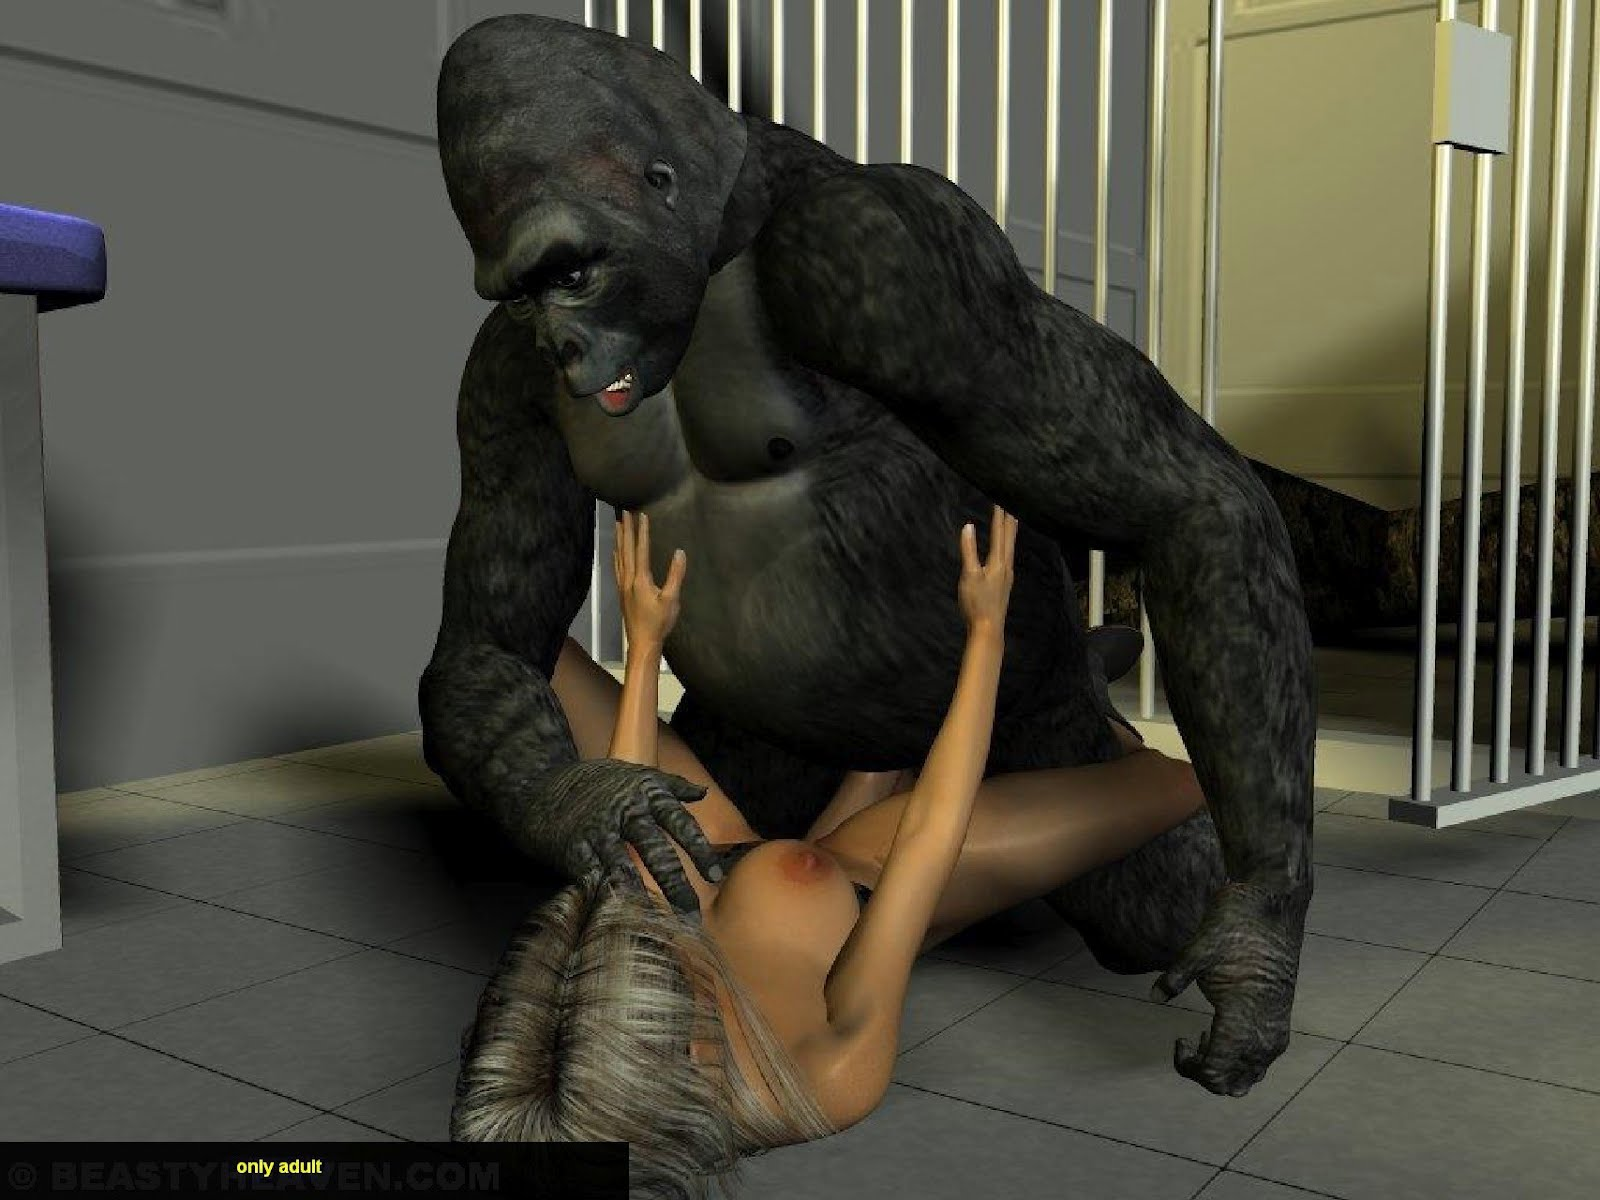 Gorilla with girl sex softcore images